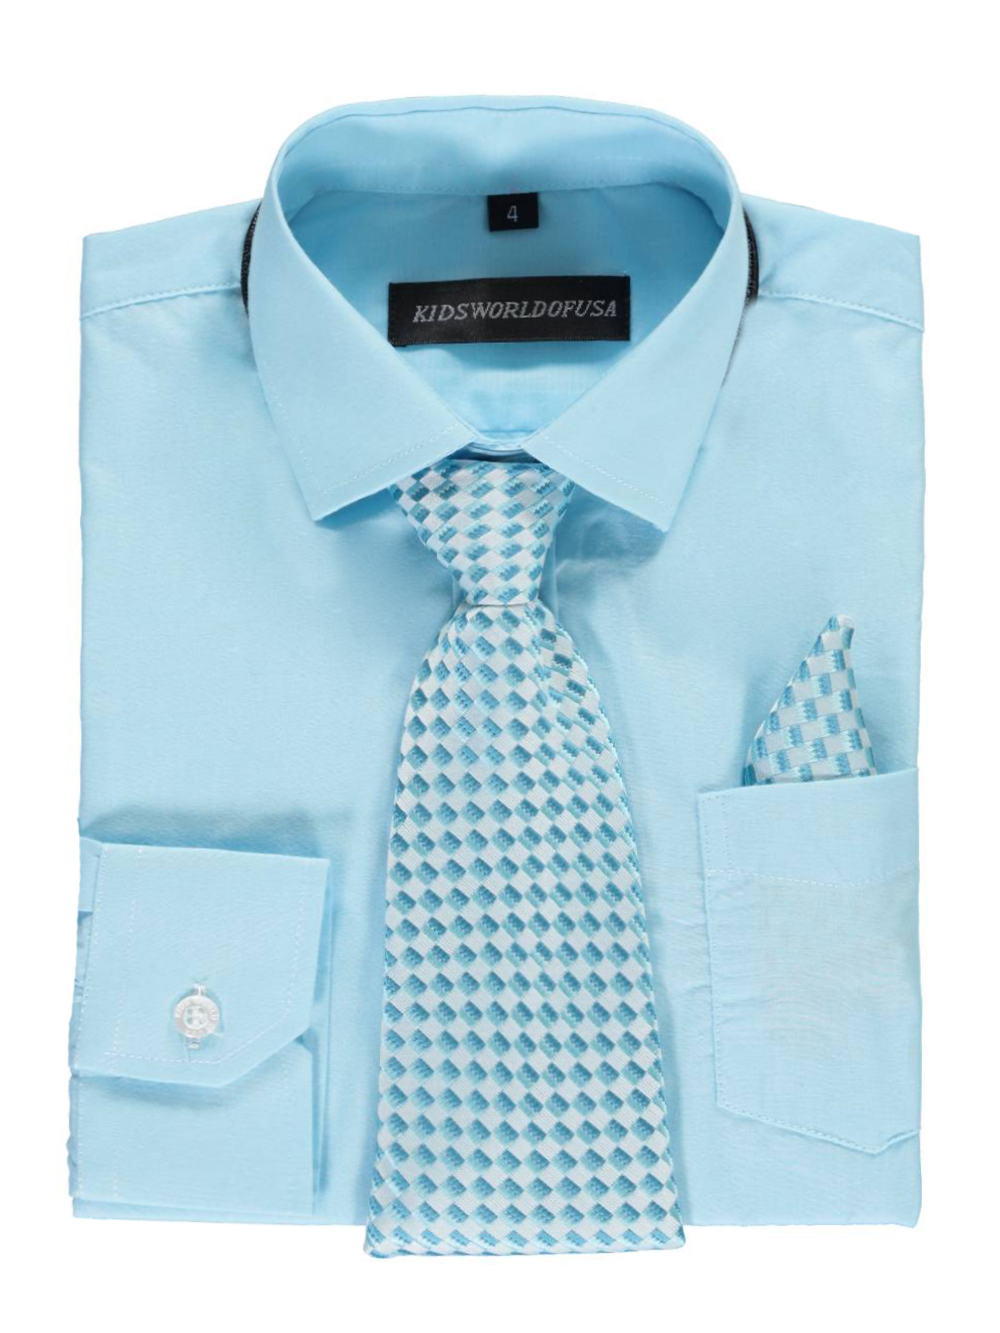 Kids World Little Boys' Dress Shirt with Accessories (Sizes 4 - 7) - turquoise, 6